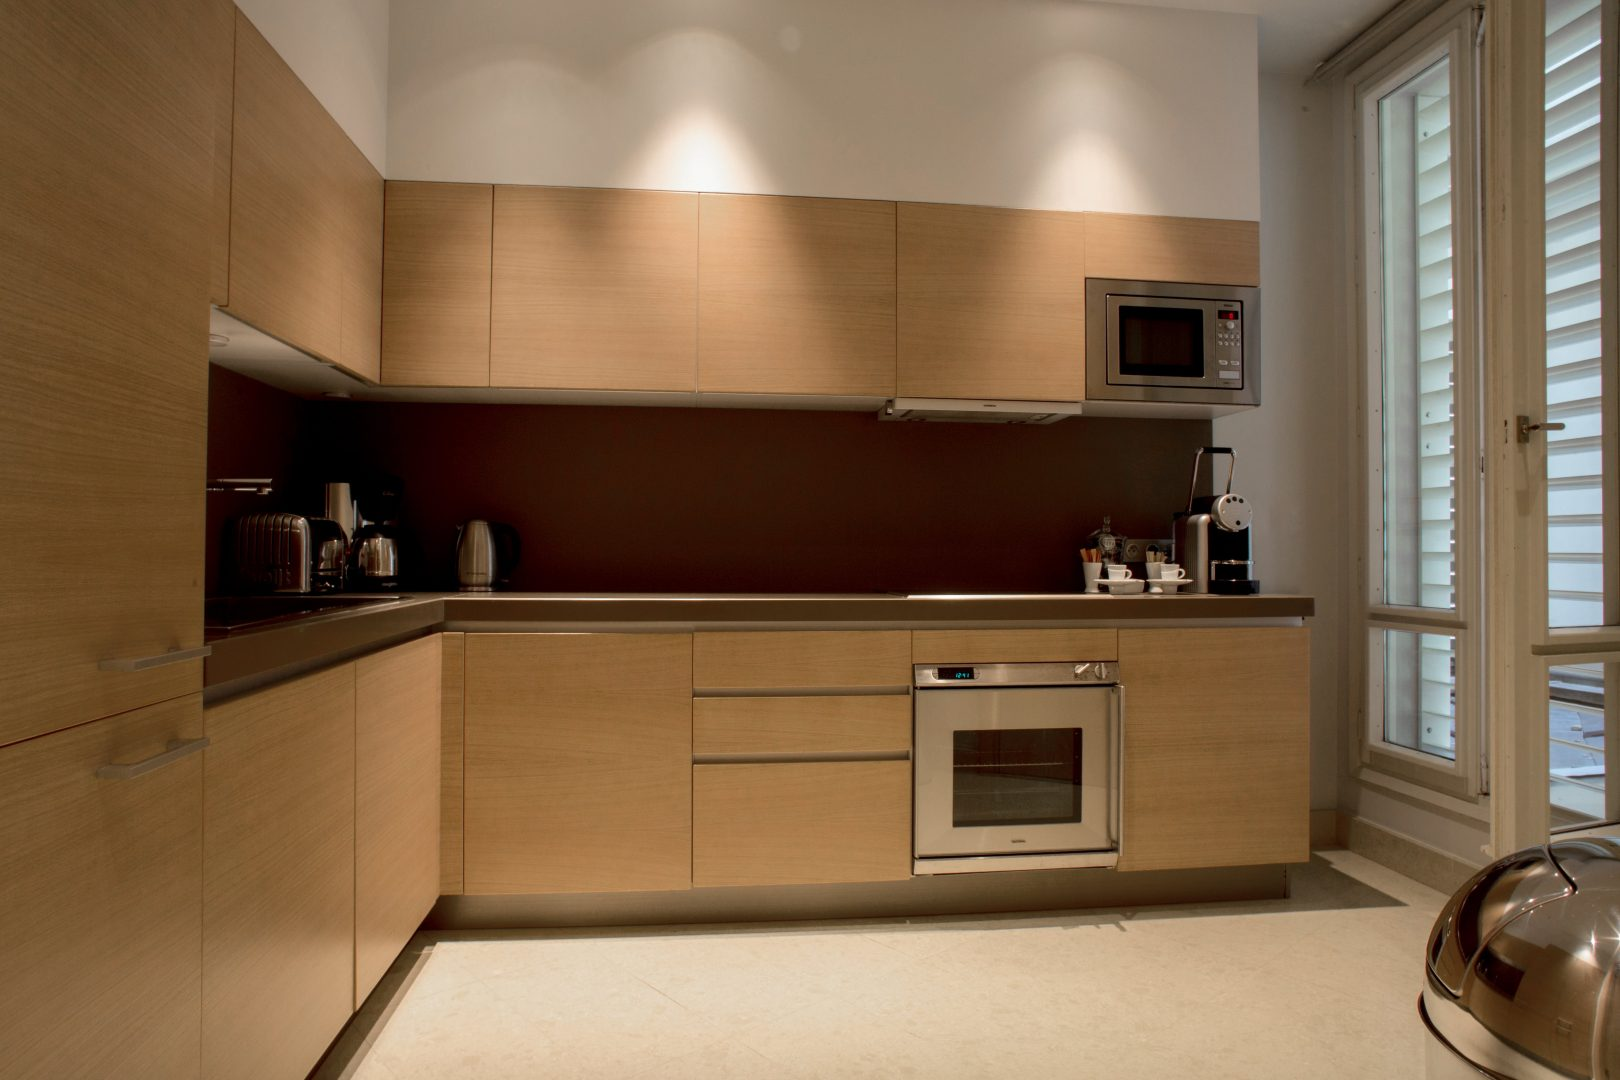 One Bedroom Paris apartment, fully serviced by La Reserve Hotel